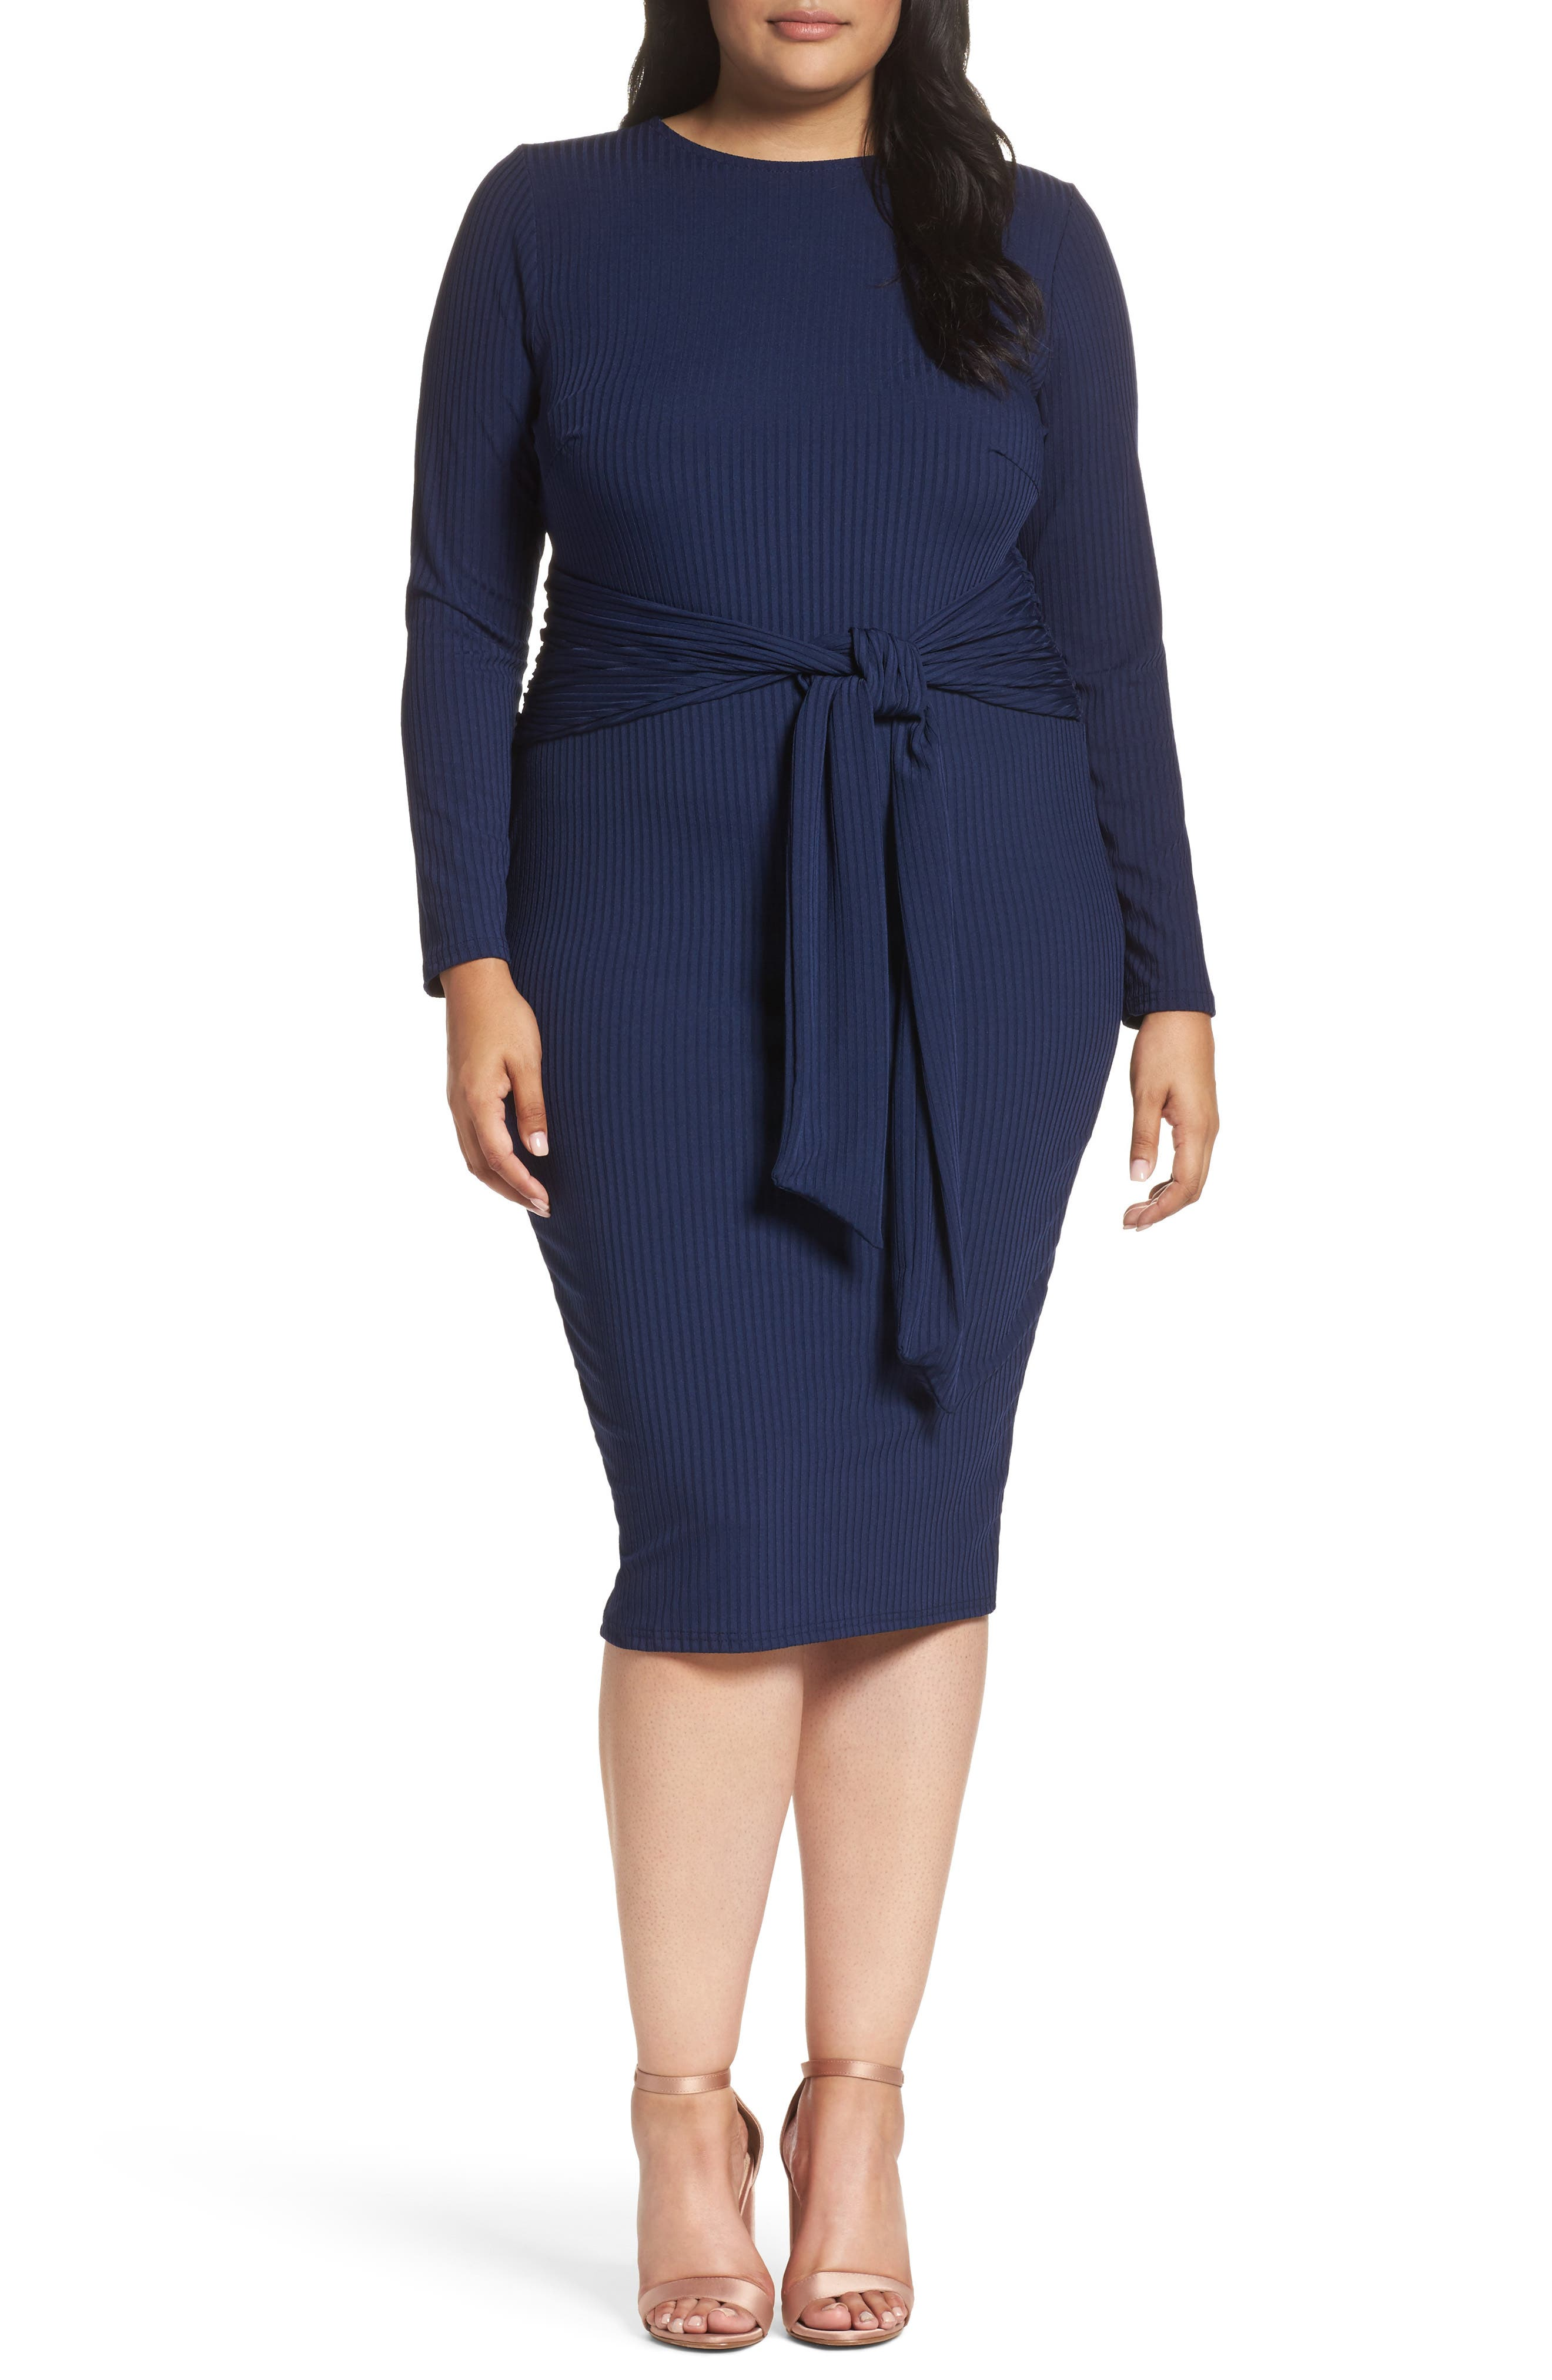 Alternate Image 1 Selected - LOST INK Tie Front Ribbed Sheath Dress (Plus Size)